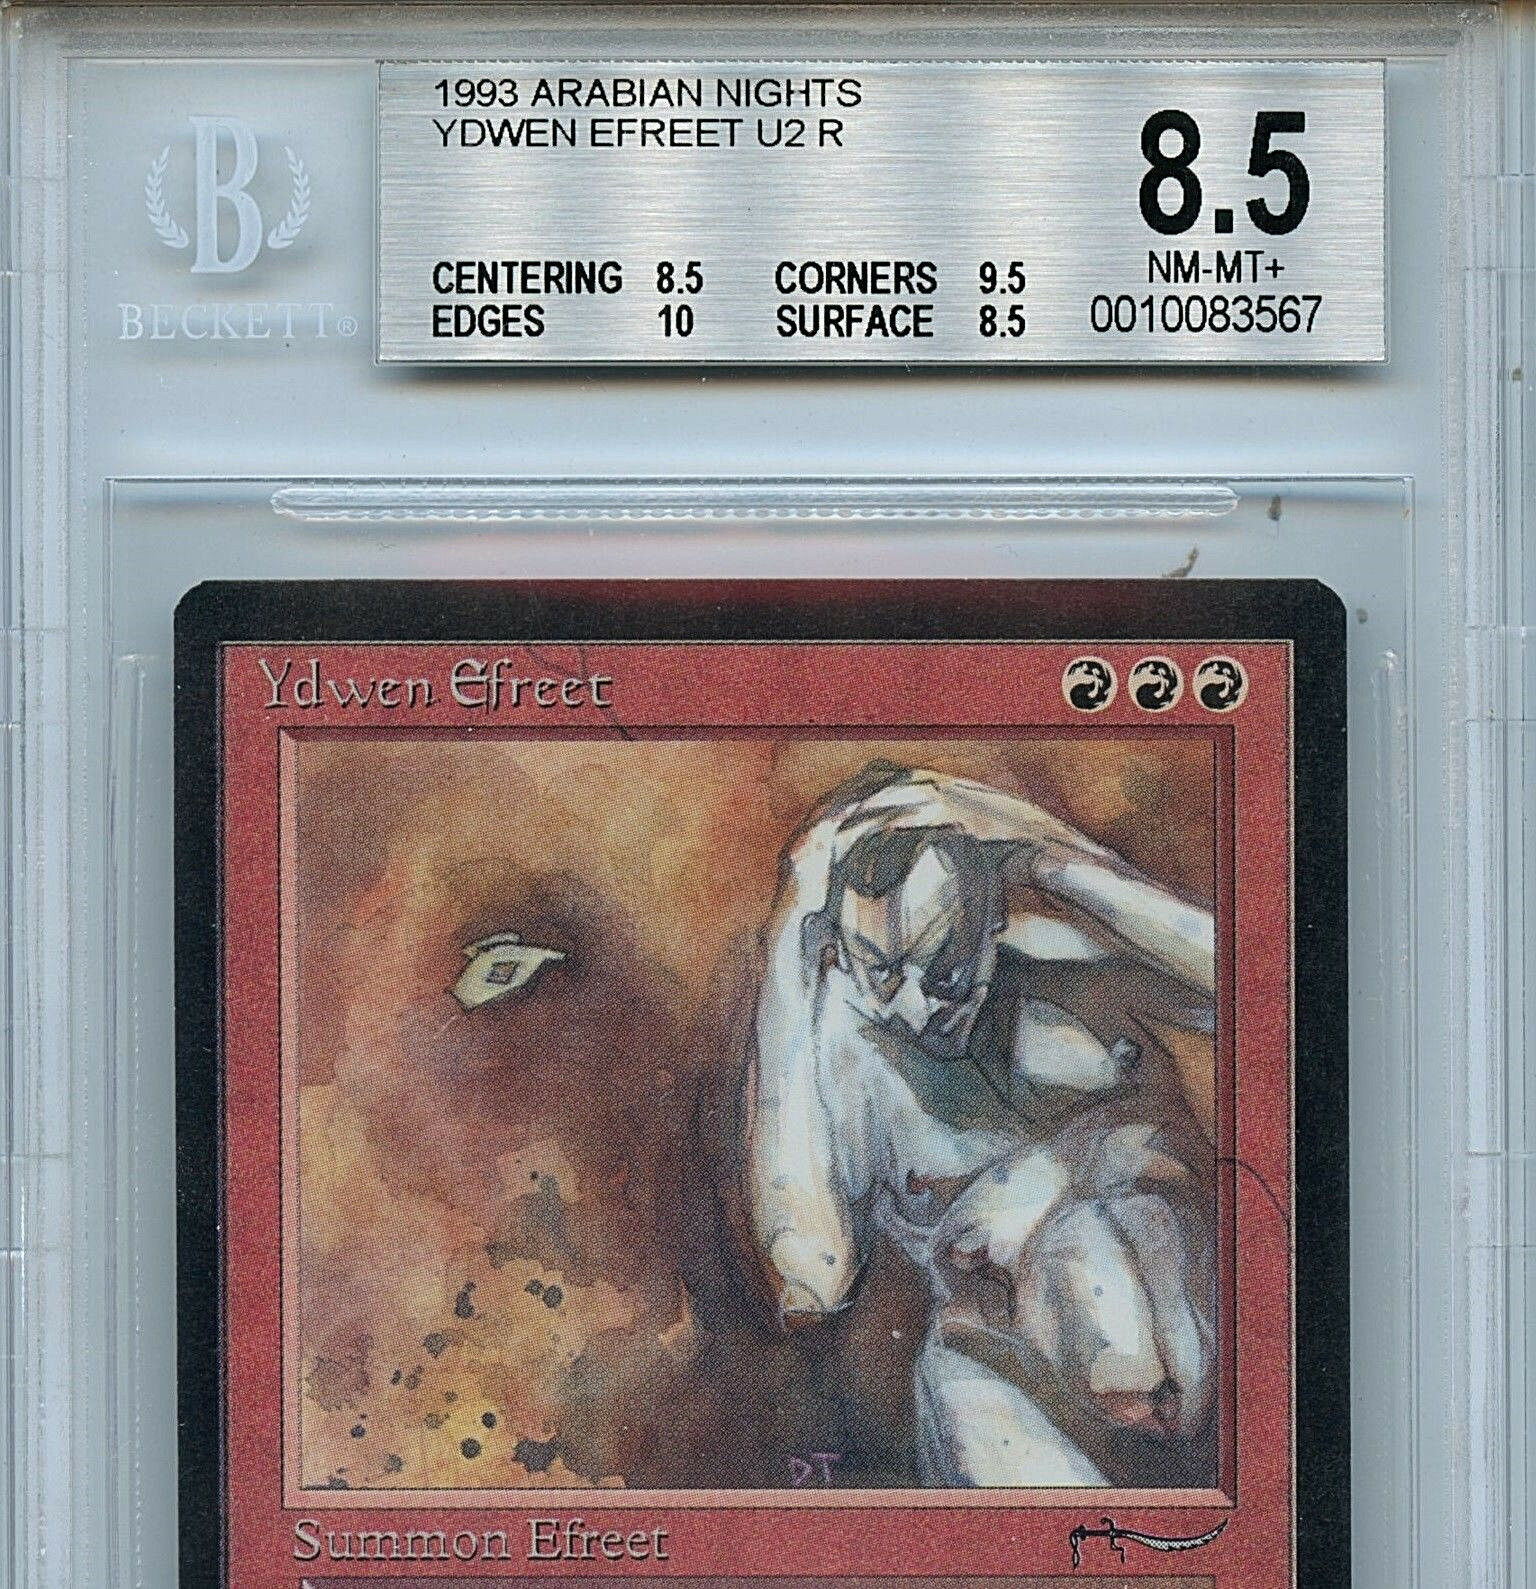 MTG Arabian Nights Ydwen Ydwen Ydwen Efreet BGS 8.5 NM-MT+ Magic the Gathering WOTC a8e190